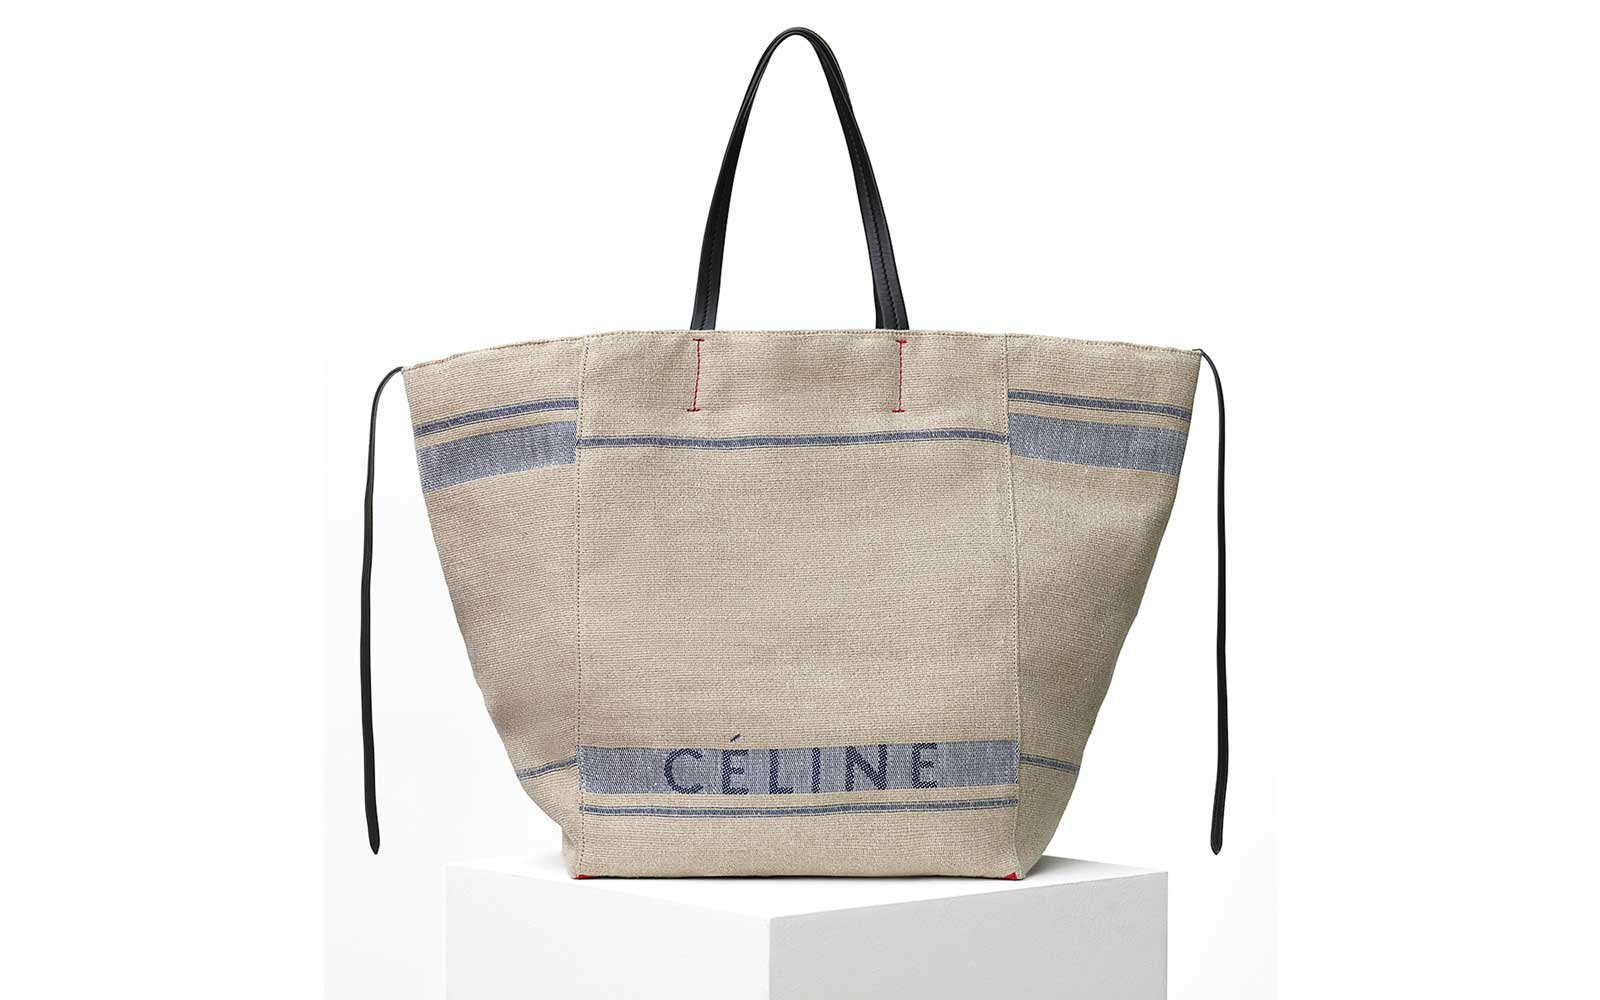 Best Beach Bags And Totes Mesh Beach Tote Bag Intl 2abfe209 : celine cream BEACHTOTES0717 from www.hargapass.com size 1600 x 1000 jpeg 134kB